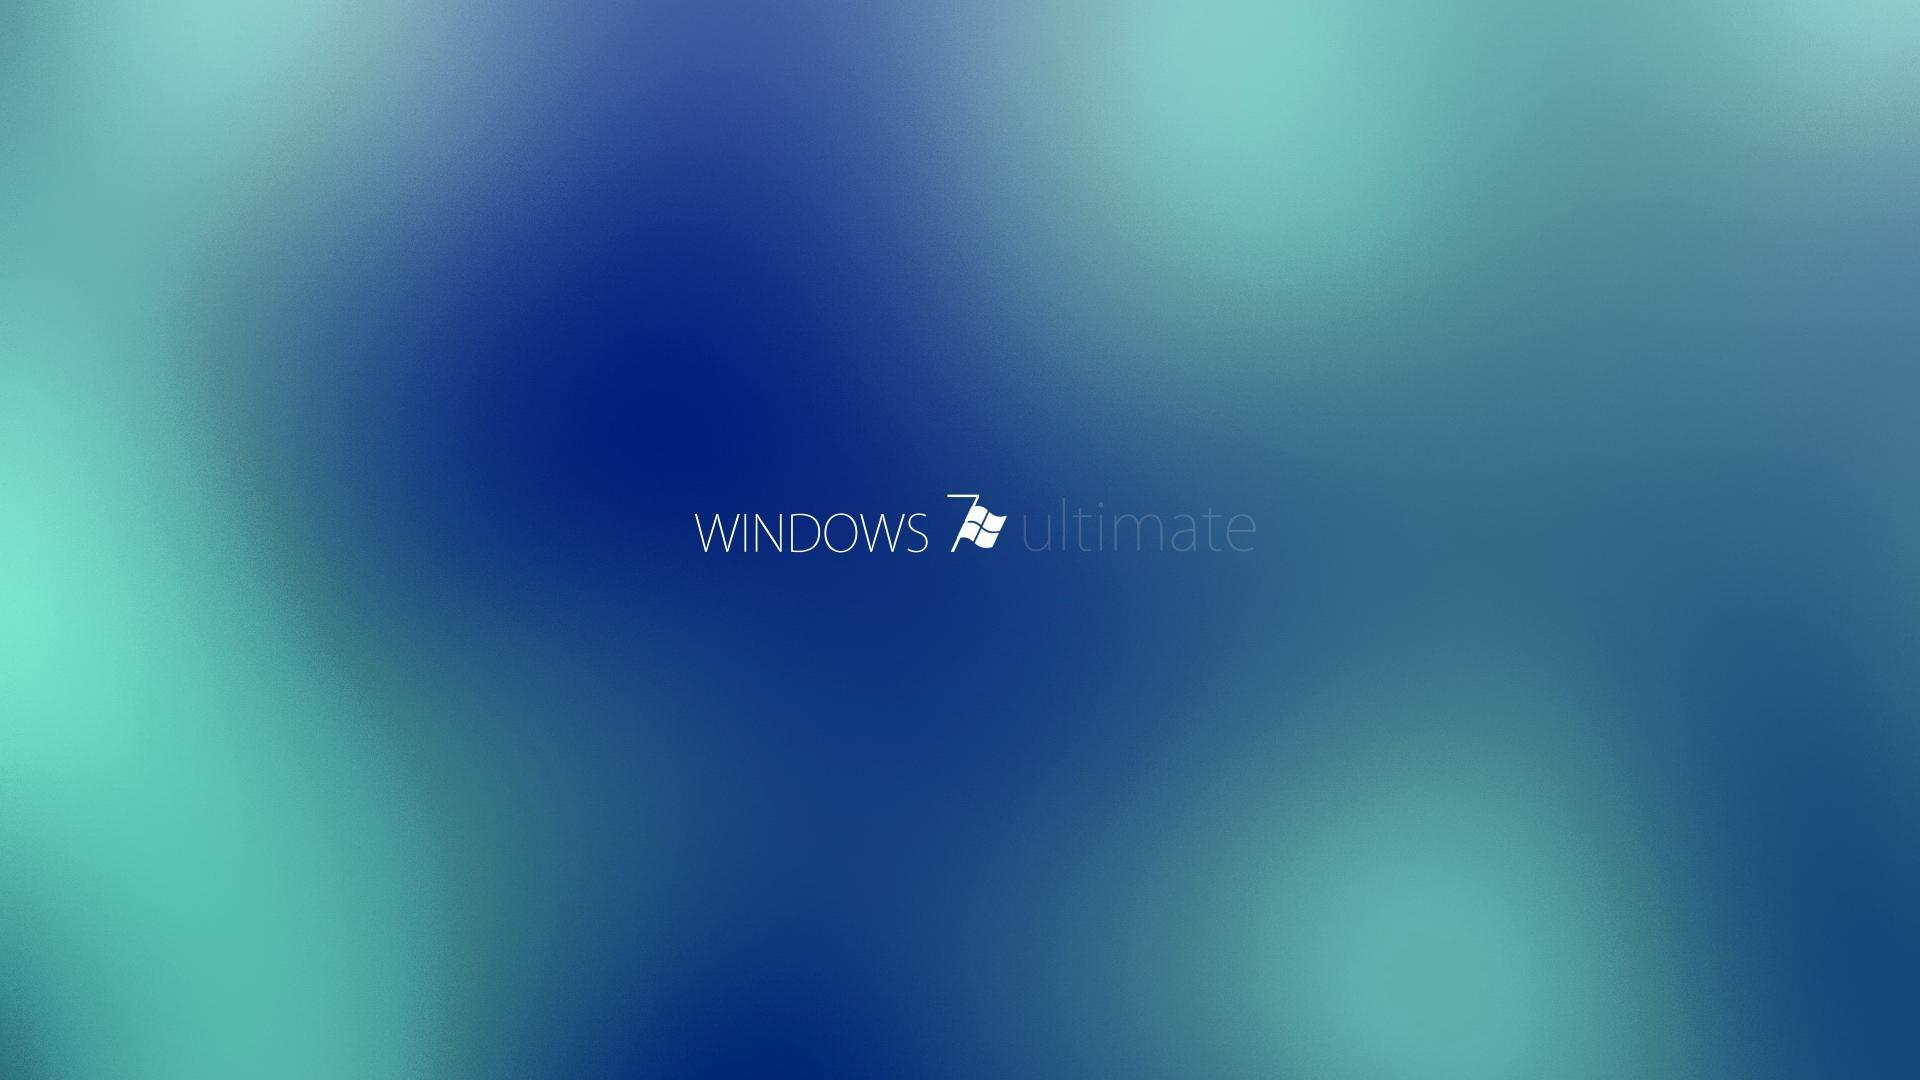 Windows wallpaper desktop background